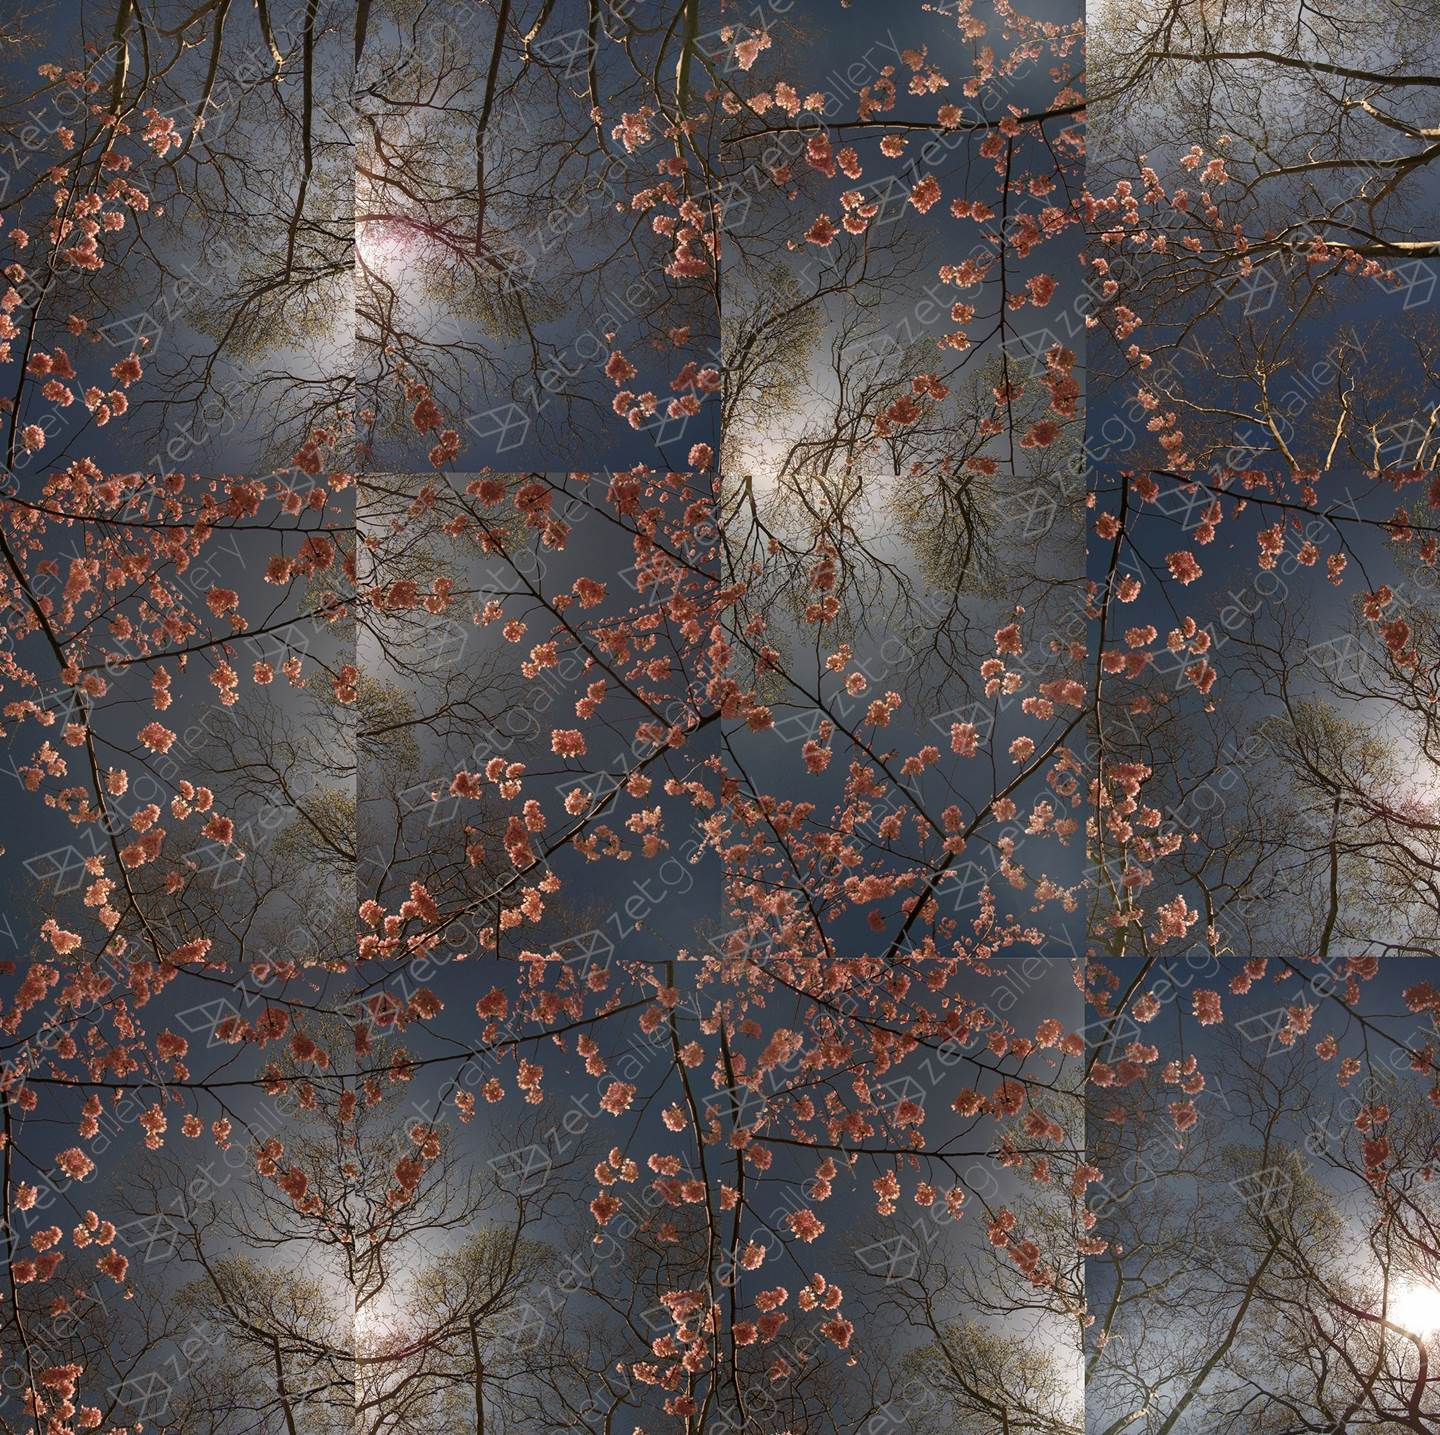 Early Spring - Cherry Blossom Bloom Opus 2, original   Photography by Shimon and Tammar Rothstein